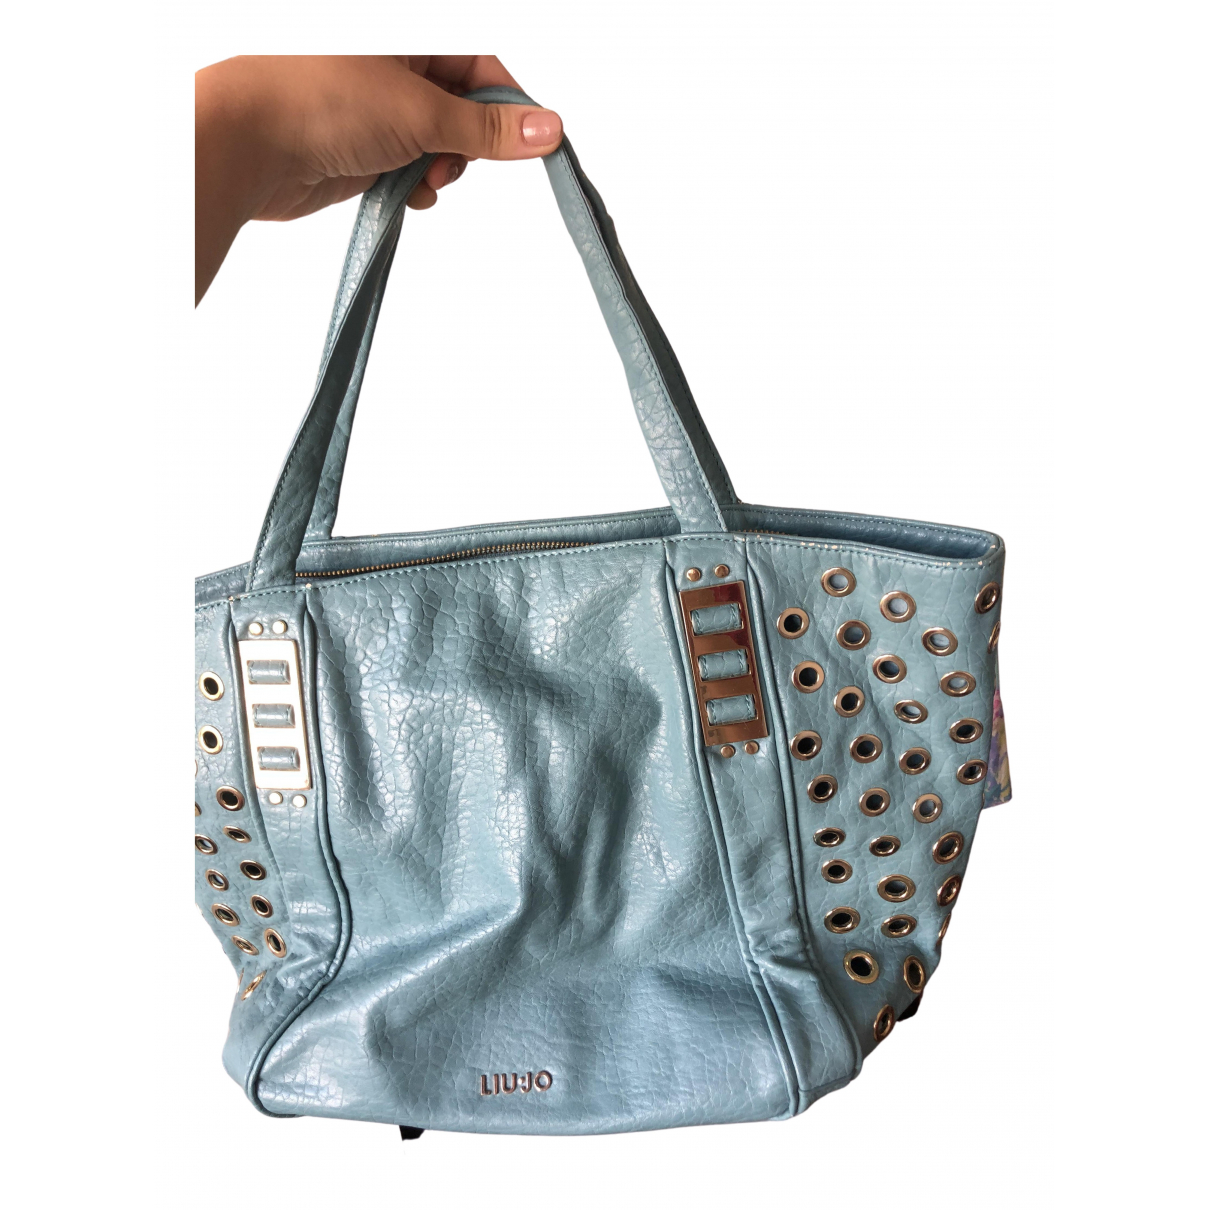 Liu.jo \N Turquoise Patent leather handbag for Women \N